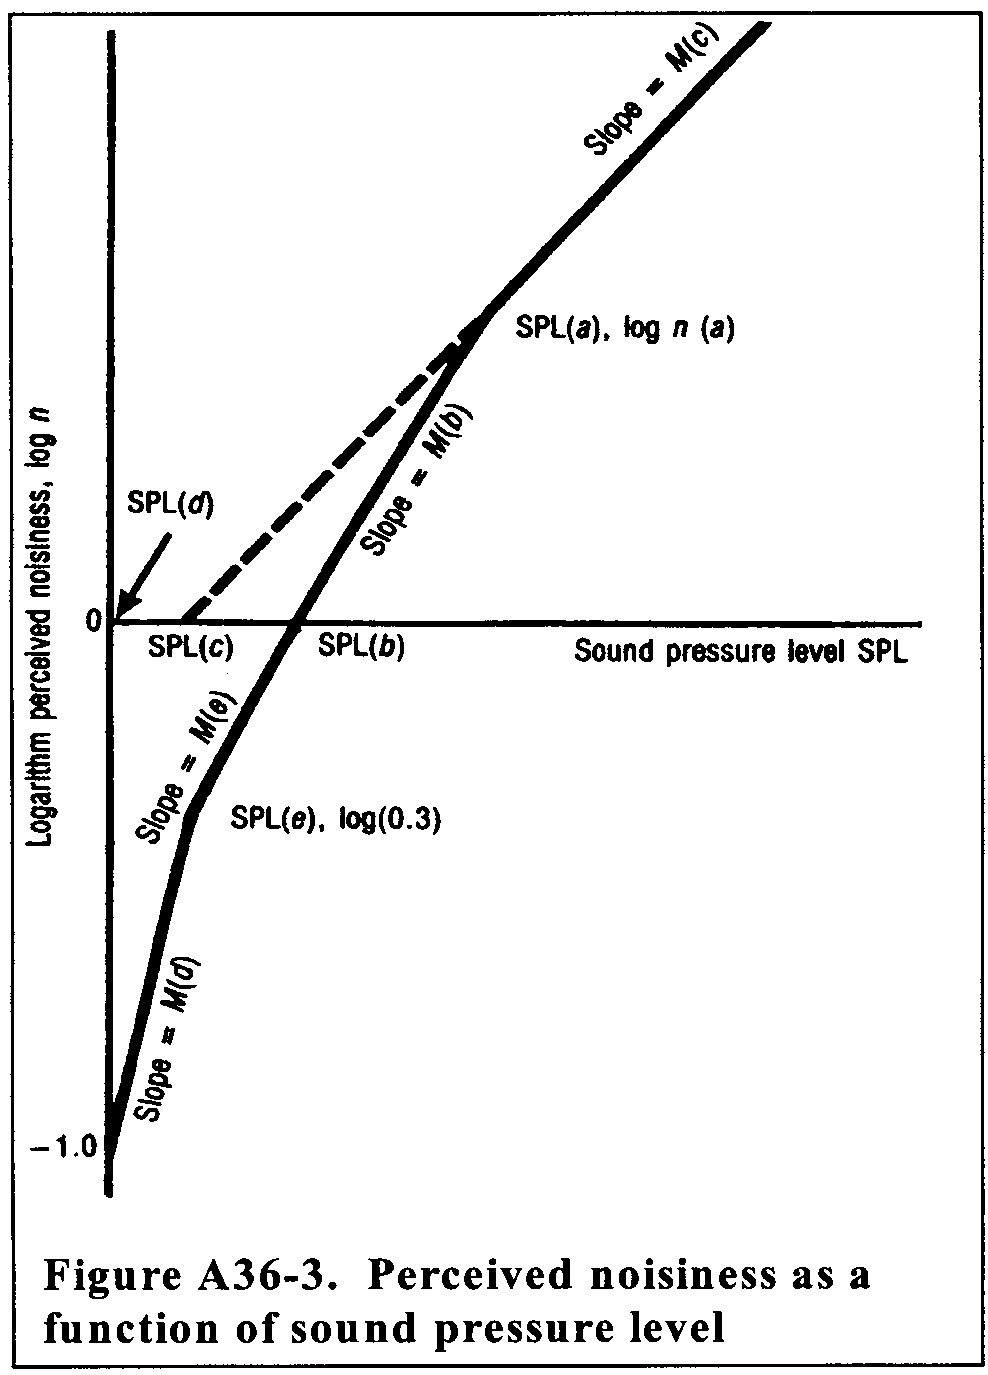 Graphic of A36.4.7.4 Table A36-3 lists the values of the constants necessary to calculate perceived noisiness as a function of sound pressure level.